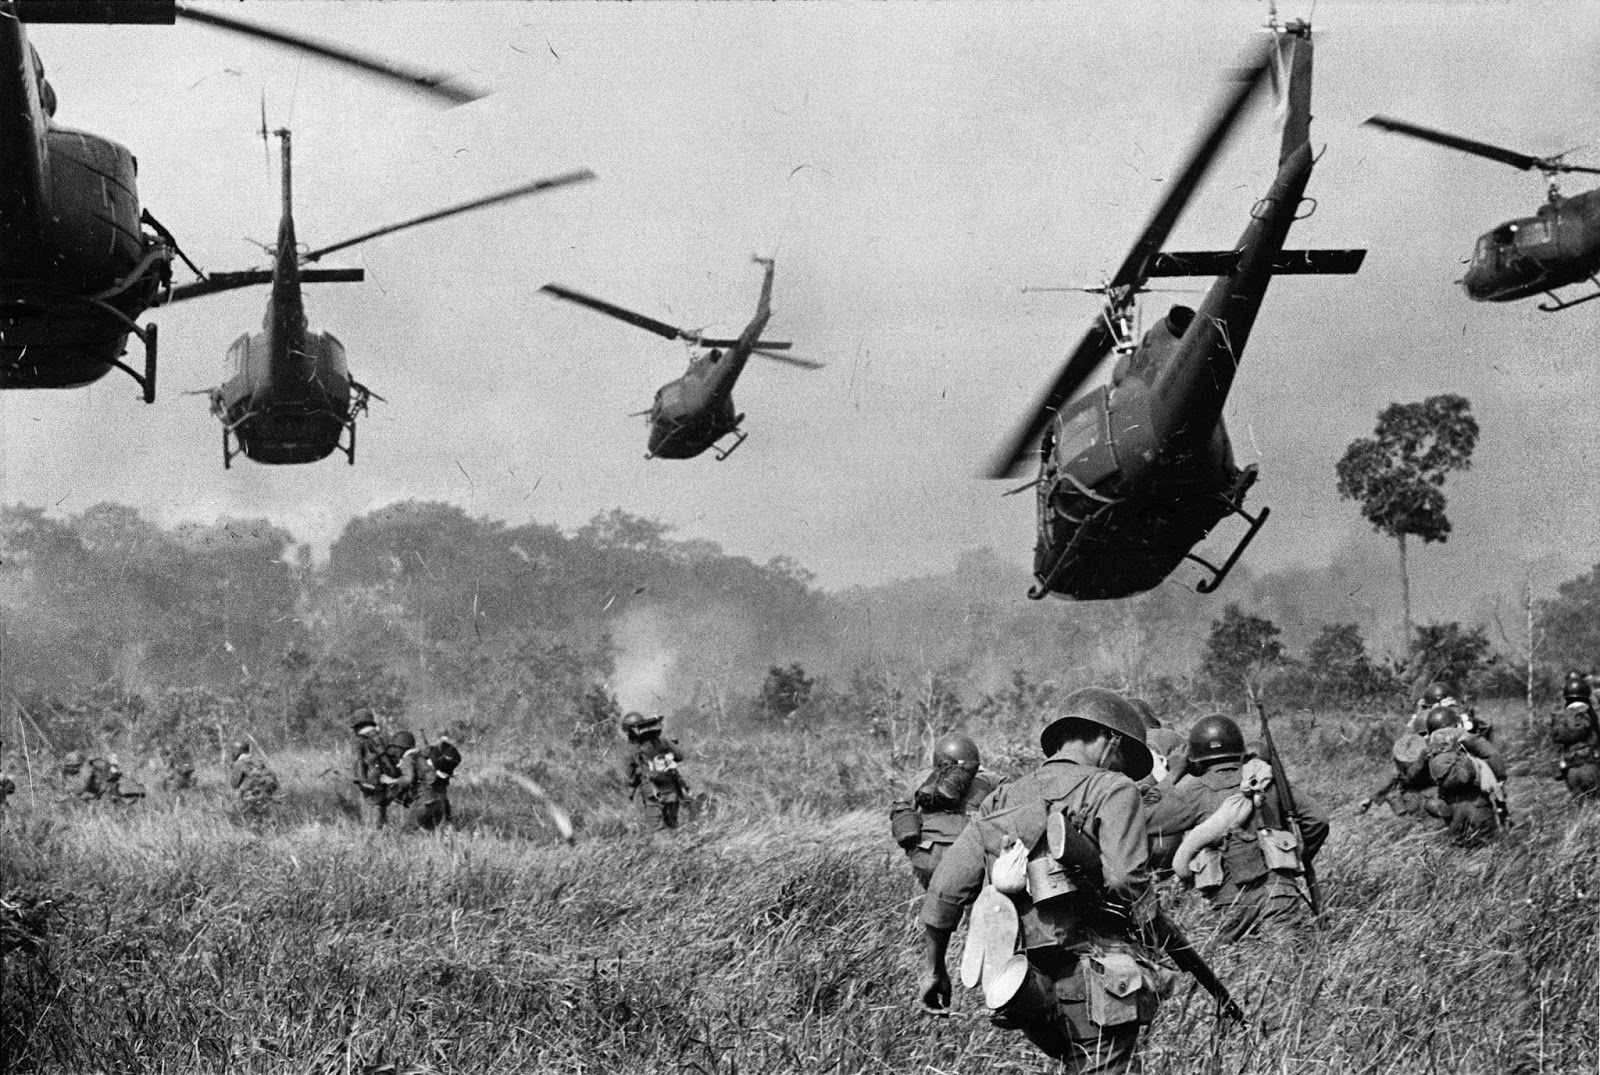 the history of the war in vietnam Ken burns and lynn novick's ten-part, 18-hour documentary series, the vietnam war, tells the epic story of one of the most consequential, divisive, and controversial events in american history as it has never before been told on film.